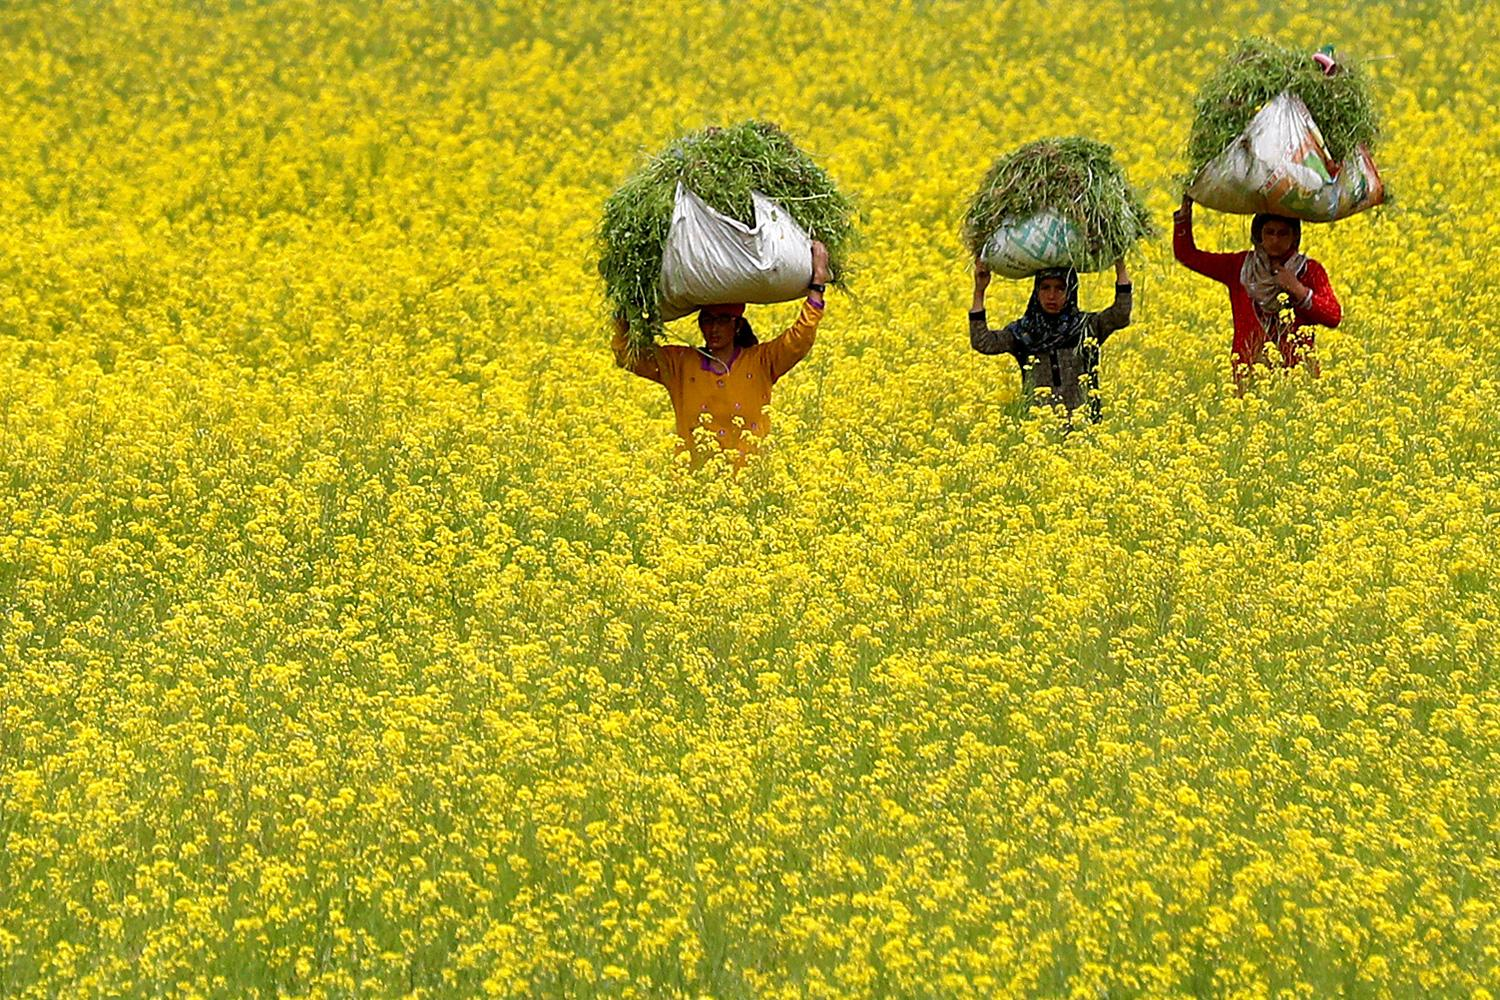 Snapshot from a time when it's far from normal: women carry cattle fodder through a mustard field on Earth Day, amid the coronavirus lockdown, on the outskirts of Srinagar, India, on April 22, 2020. This is a stunning photo showing three women with large bales of freshly cut plants on their heads walking through a field thrown into a yellow hue because of the flowering mustard greens. REUTERS/Danish Ismail